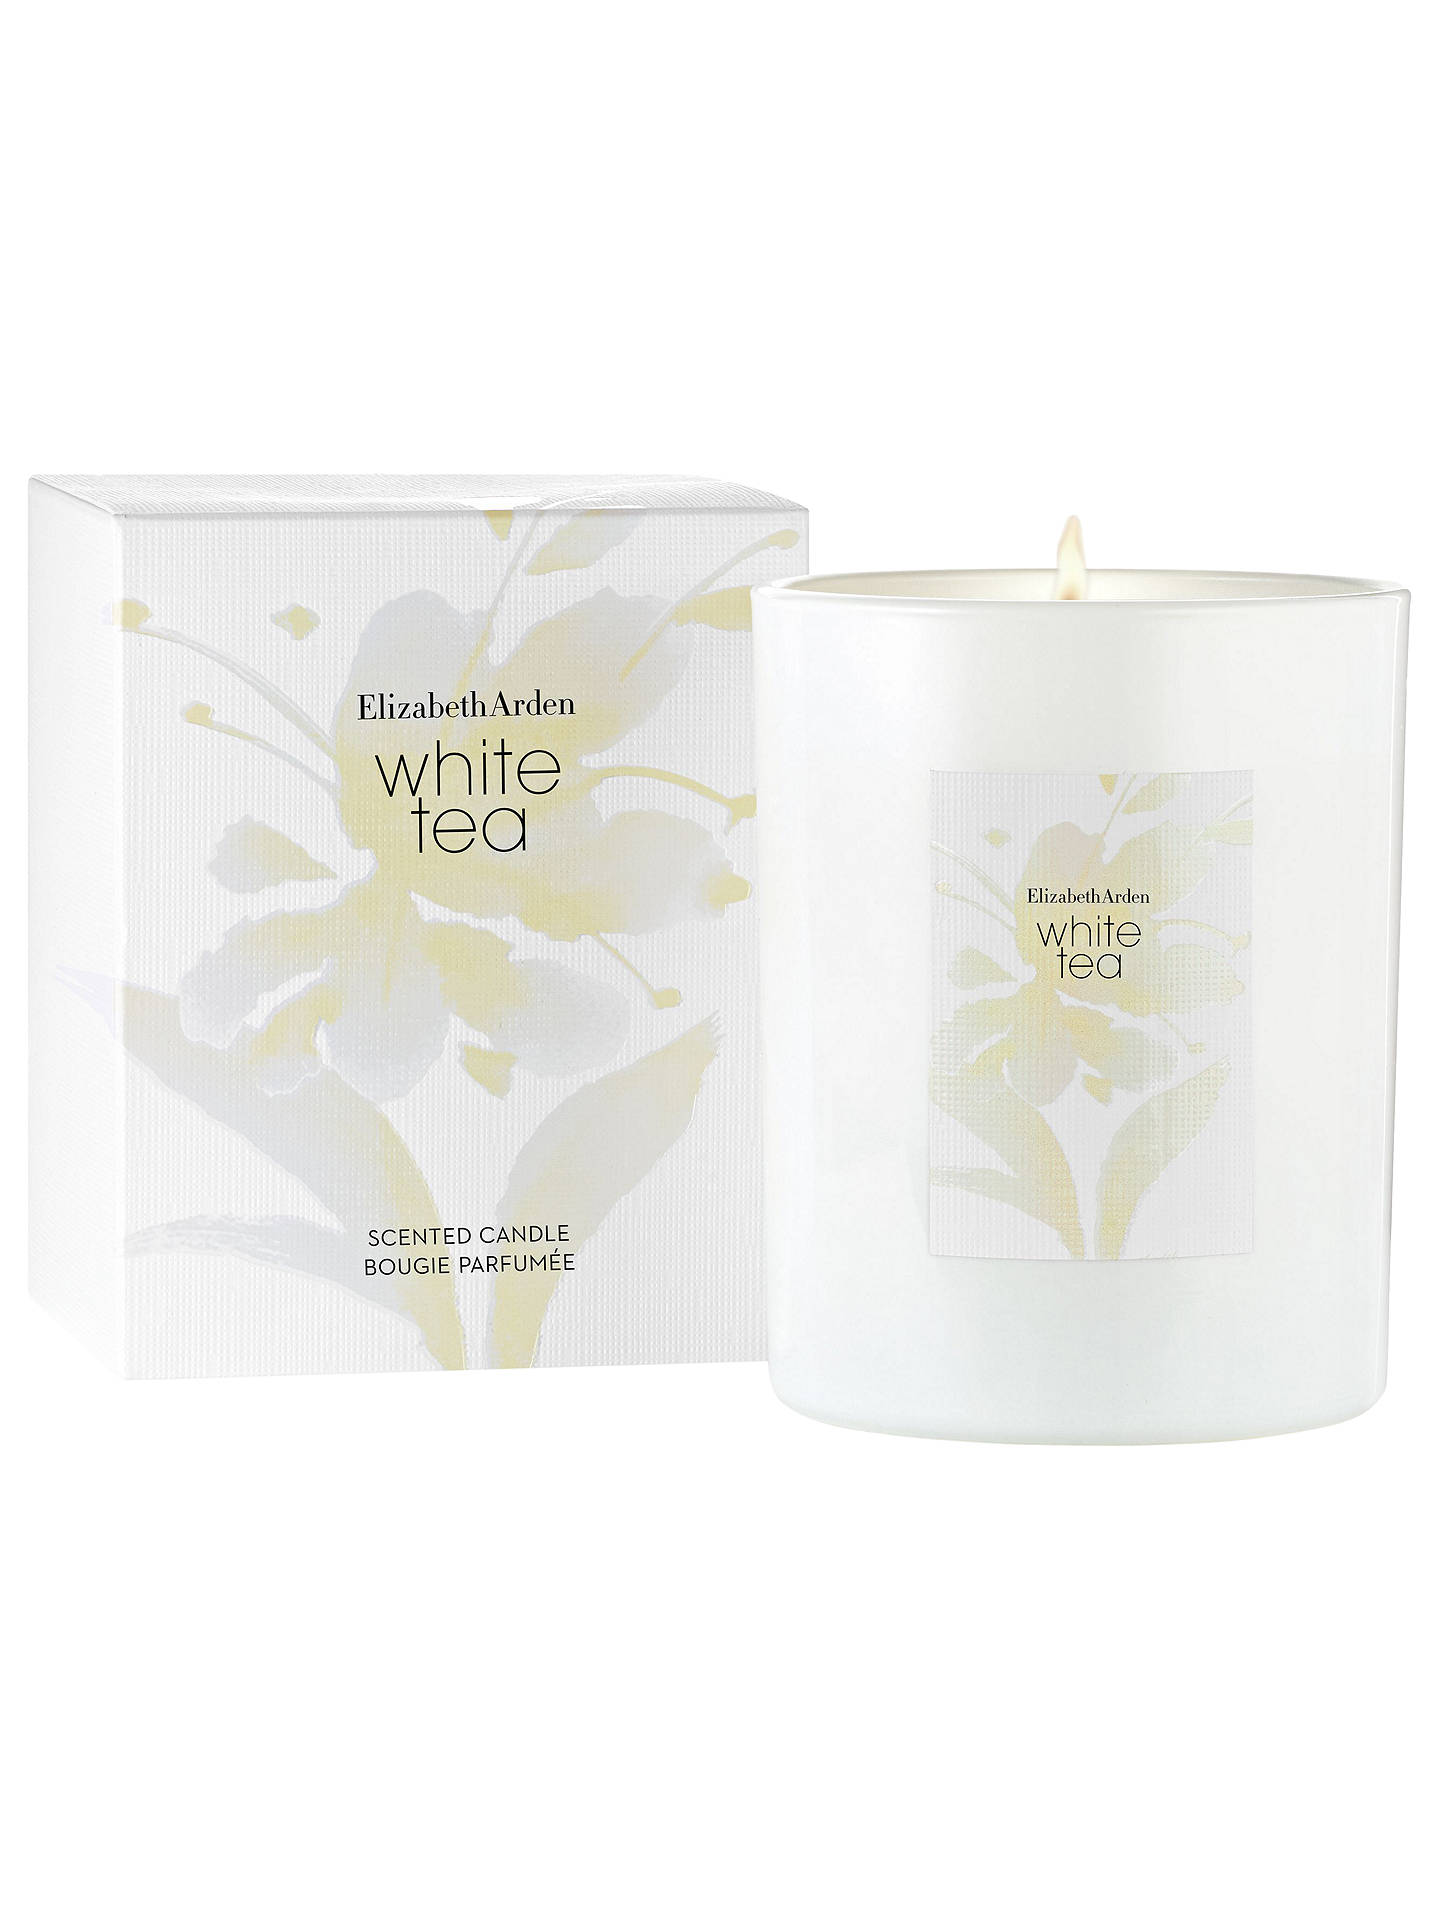 BuyElizabeth Arden White Tea Scented Candle, 226.8g Online at johnlewis.com